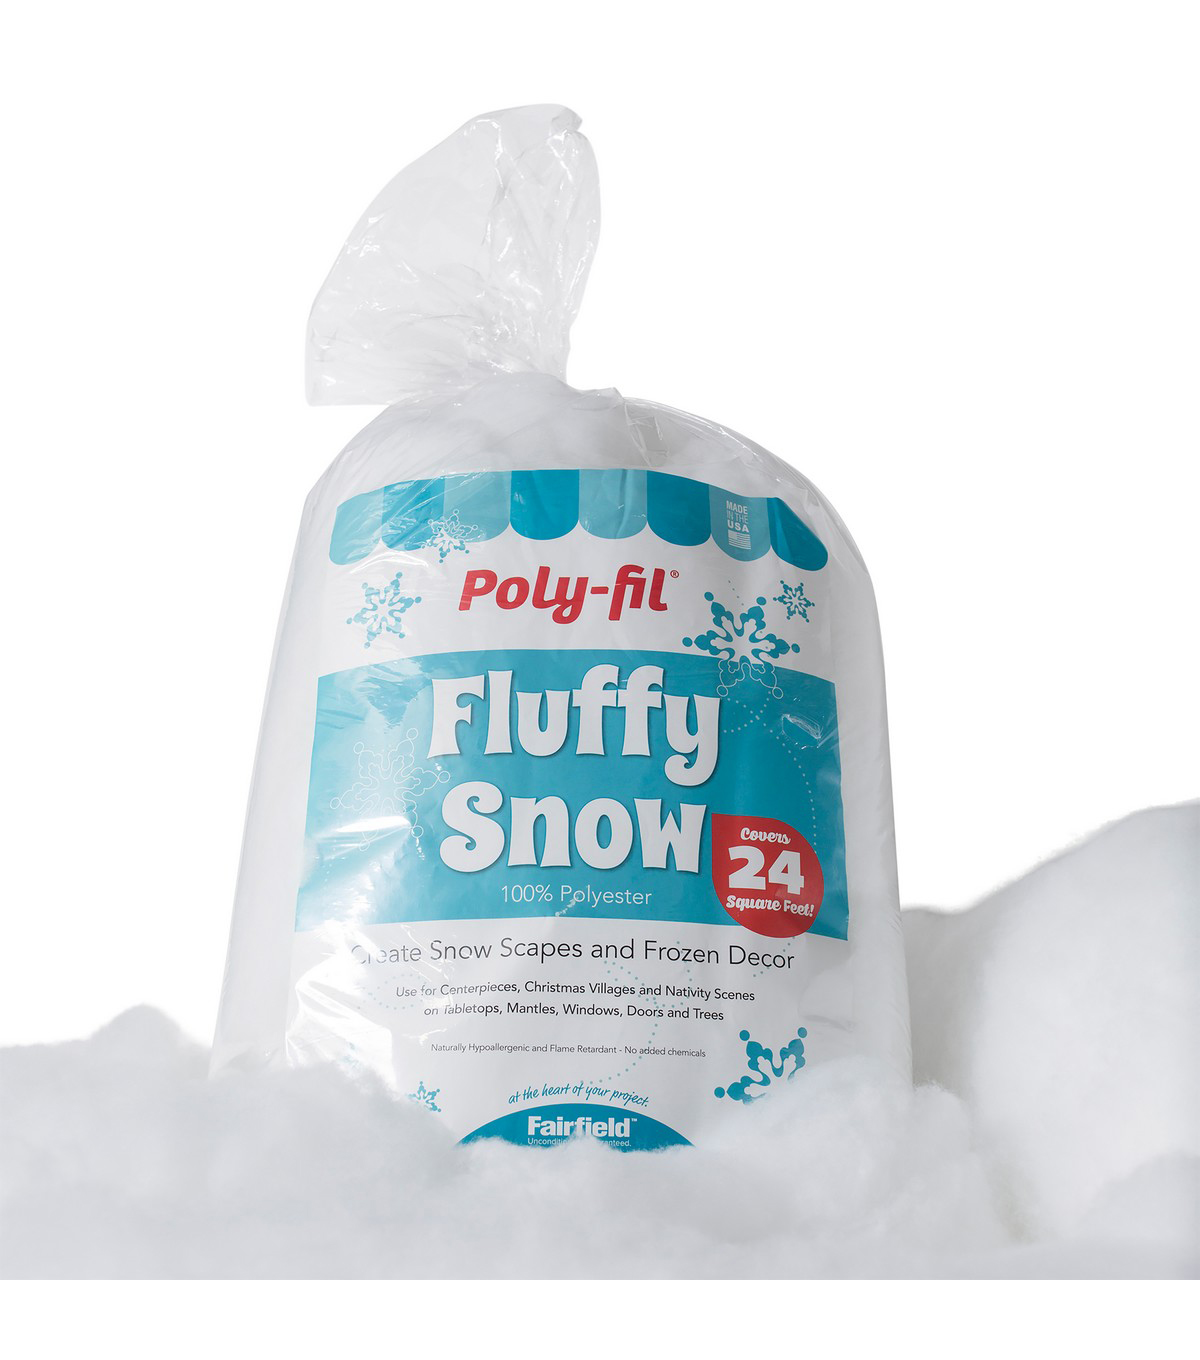 Poly-Fil Fluffy Snow 24 oz. for DIY Snow Scapes